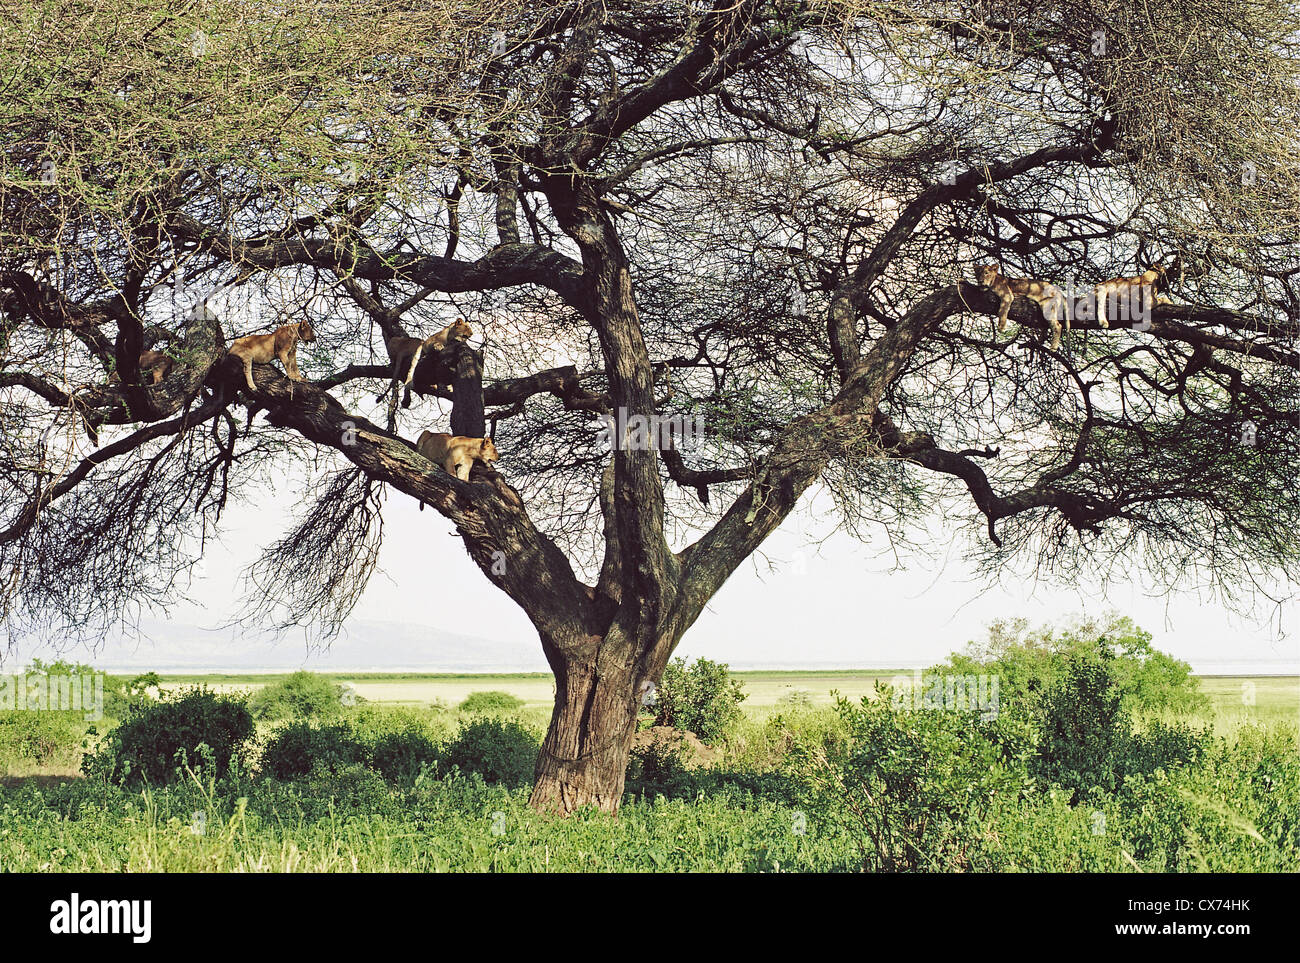 Tree with several female Lions lionesses in its branches Lake Manyara National Park Tanzania - Stock Image